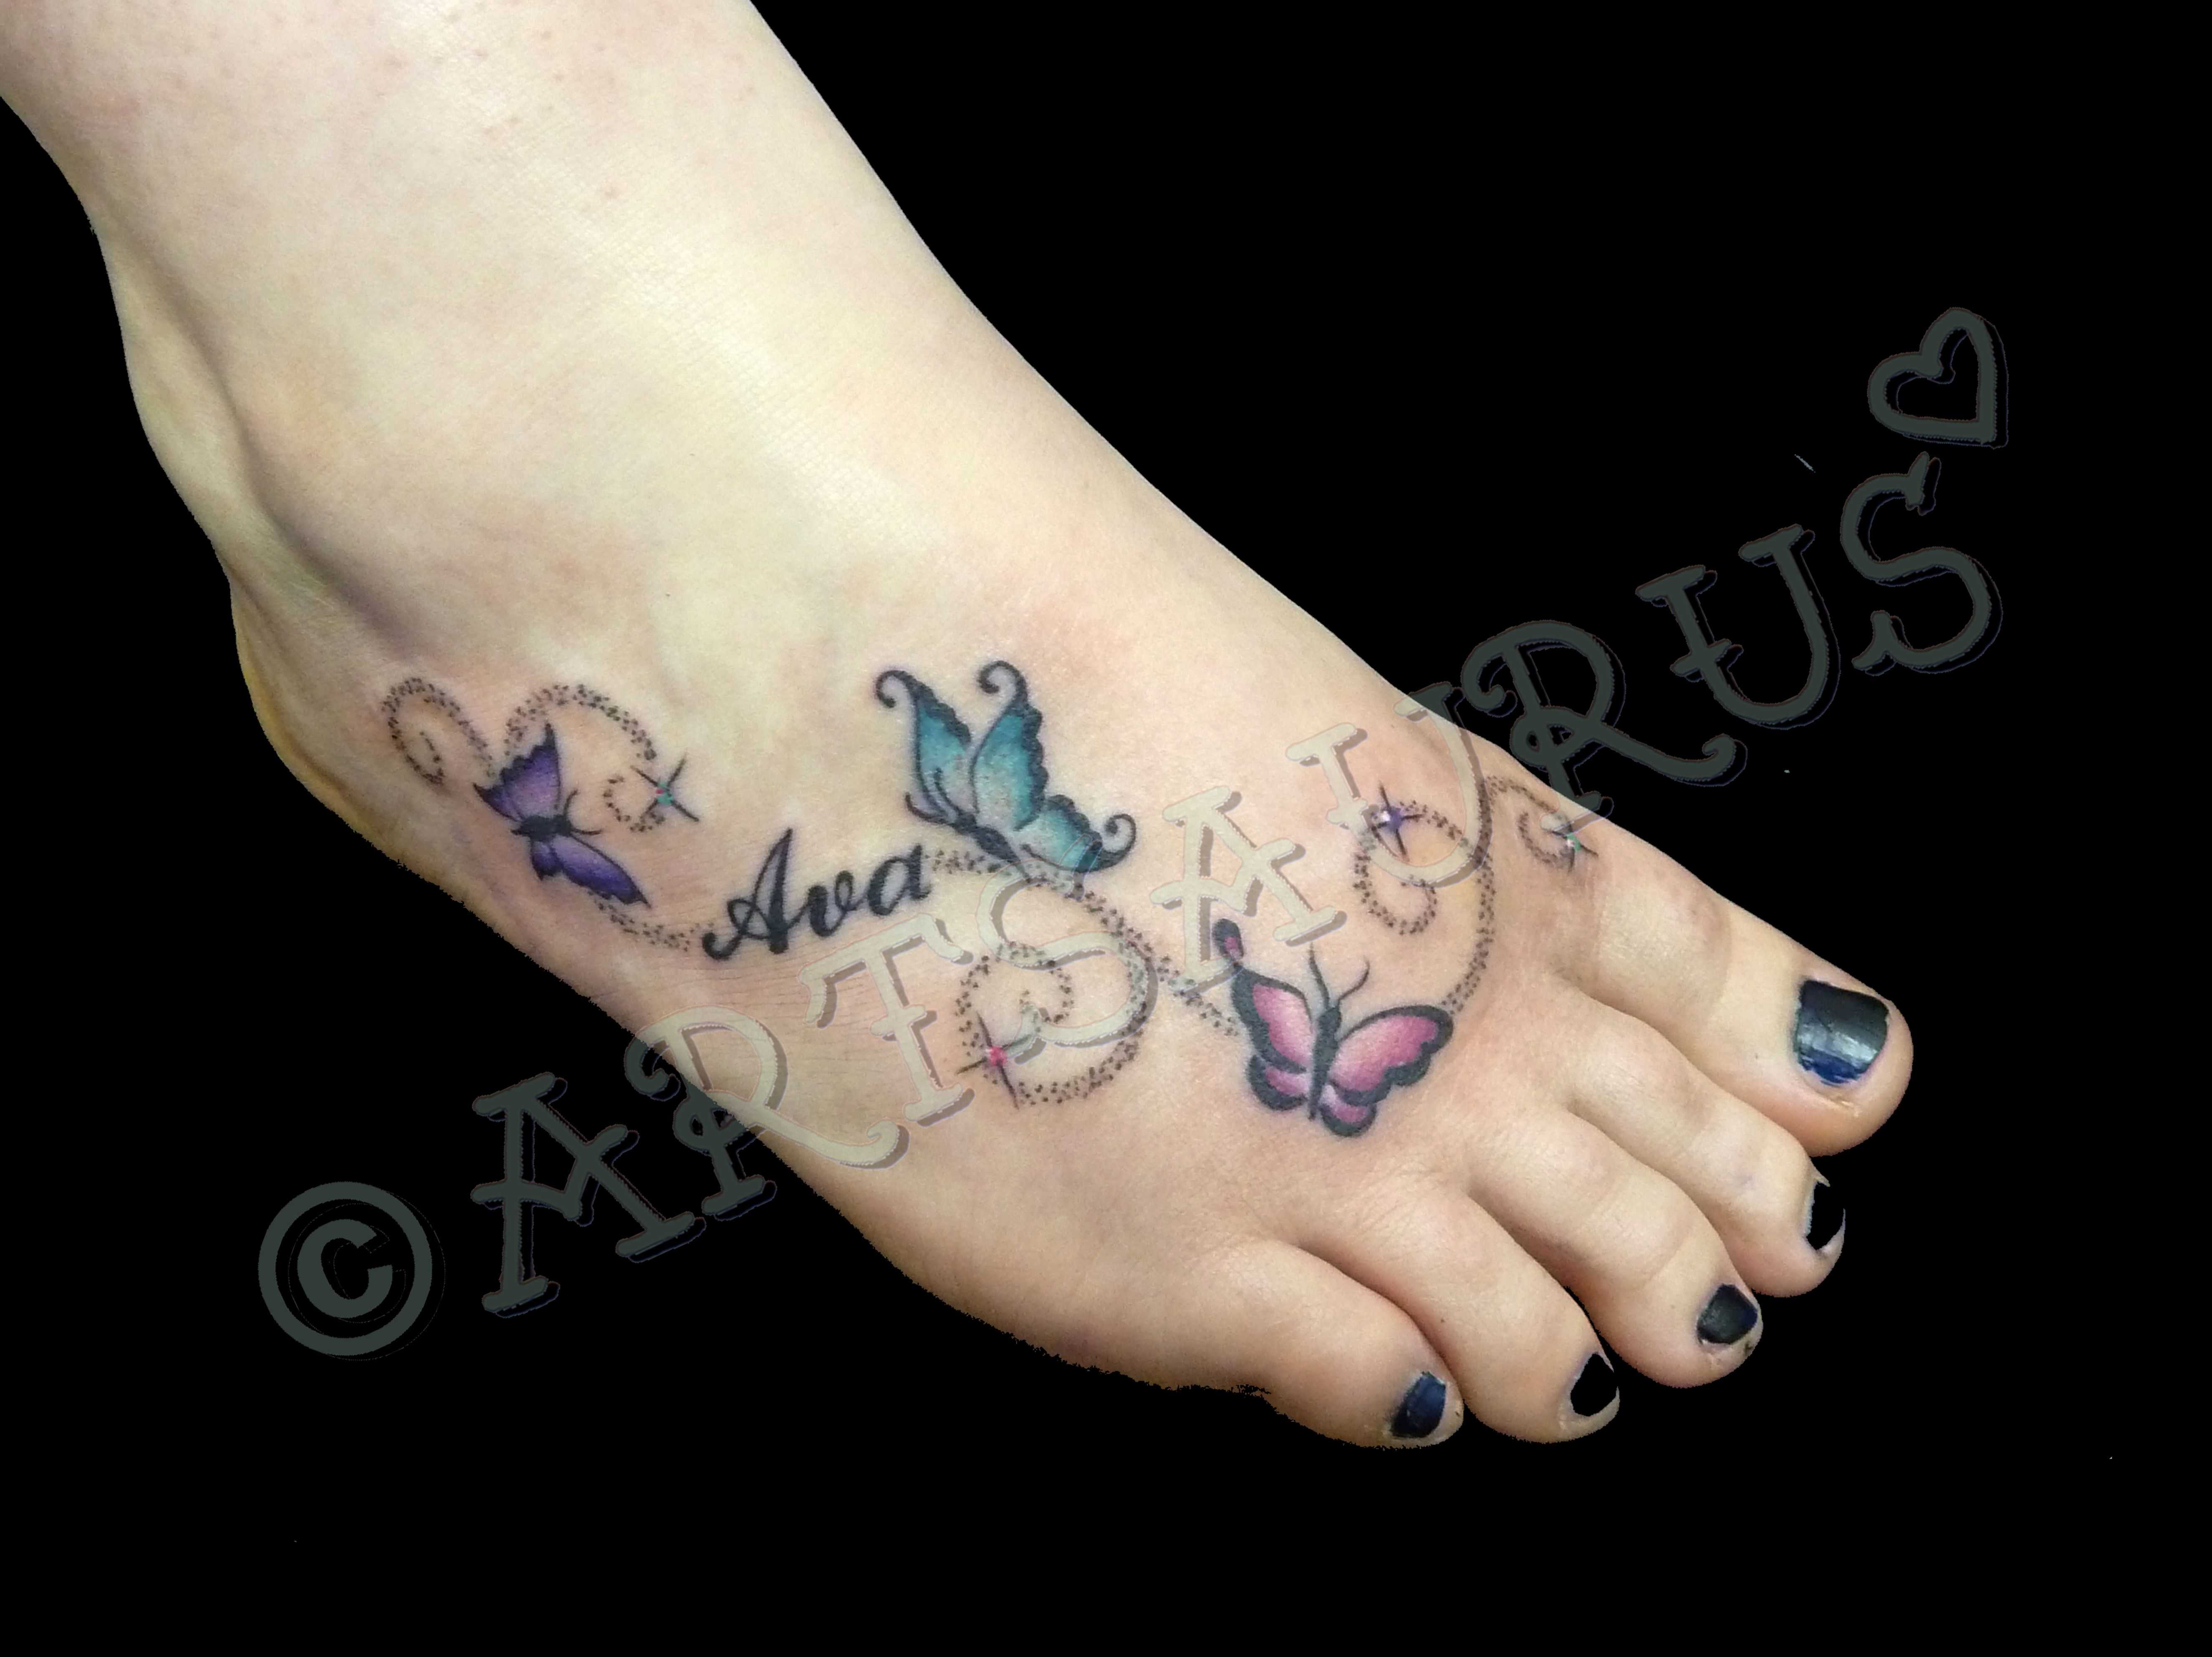 Leave A Comment Tags Butterfly Foot Girly Stars Name Tattoo Wrist Foot Tattoos Butterfly Foot Tattoo Foot Tattoo